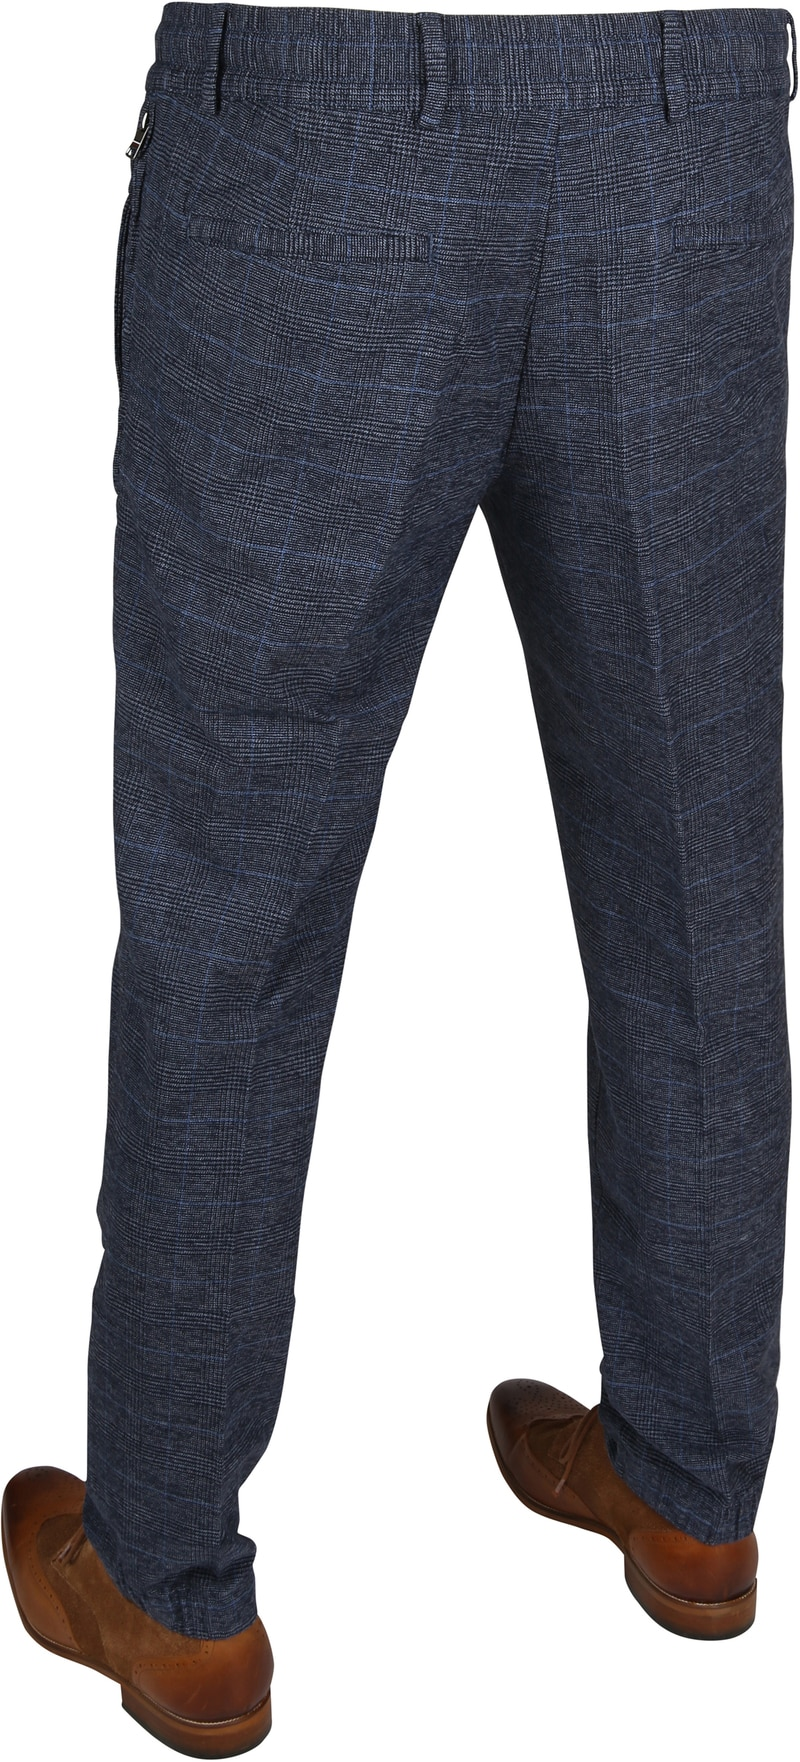 Tommy Hilfiger Active Pants Ruit Navy foto 2